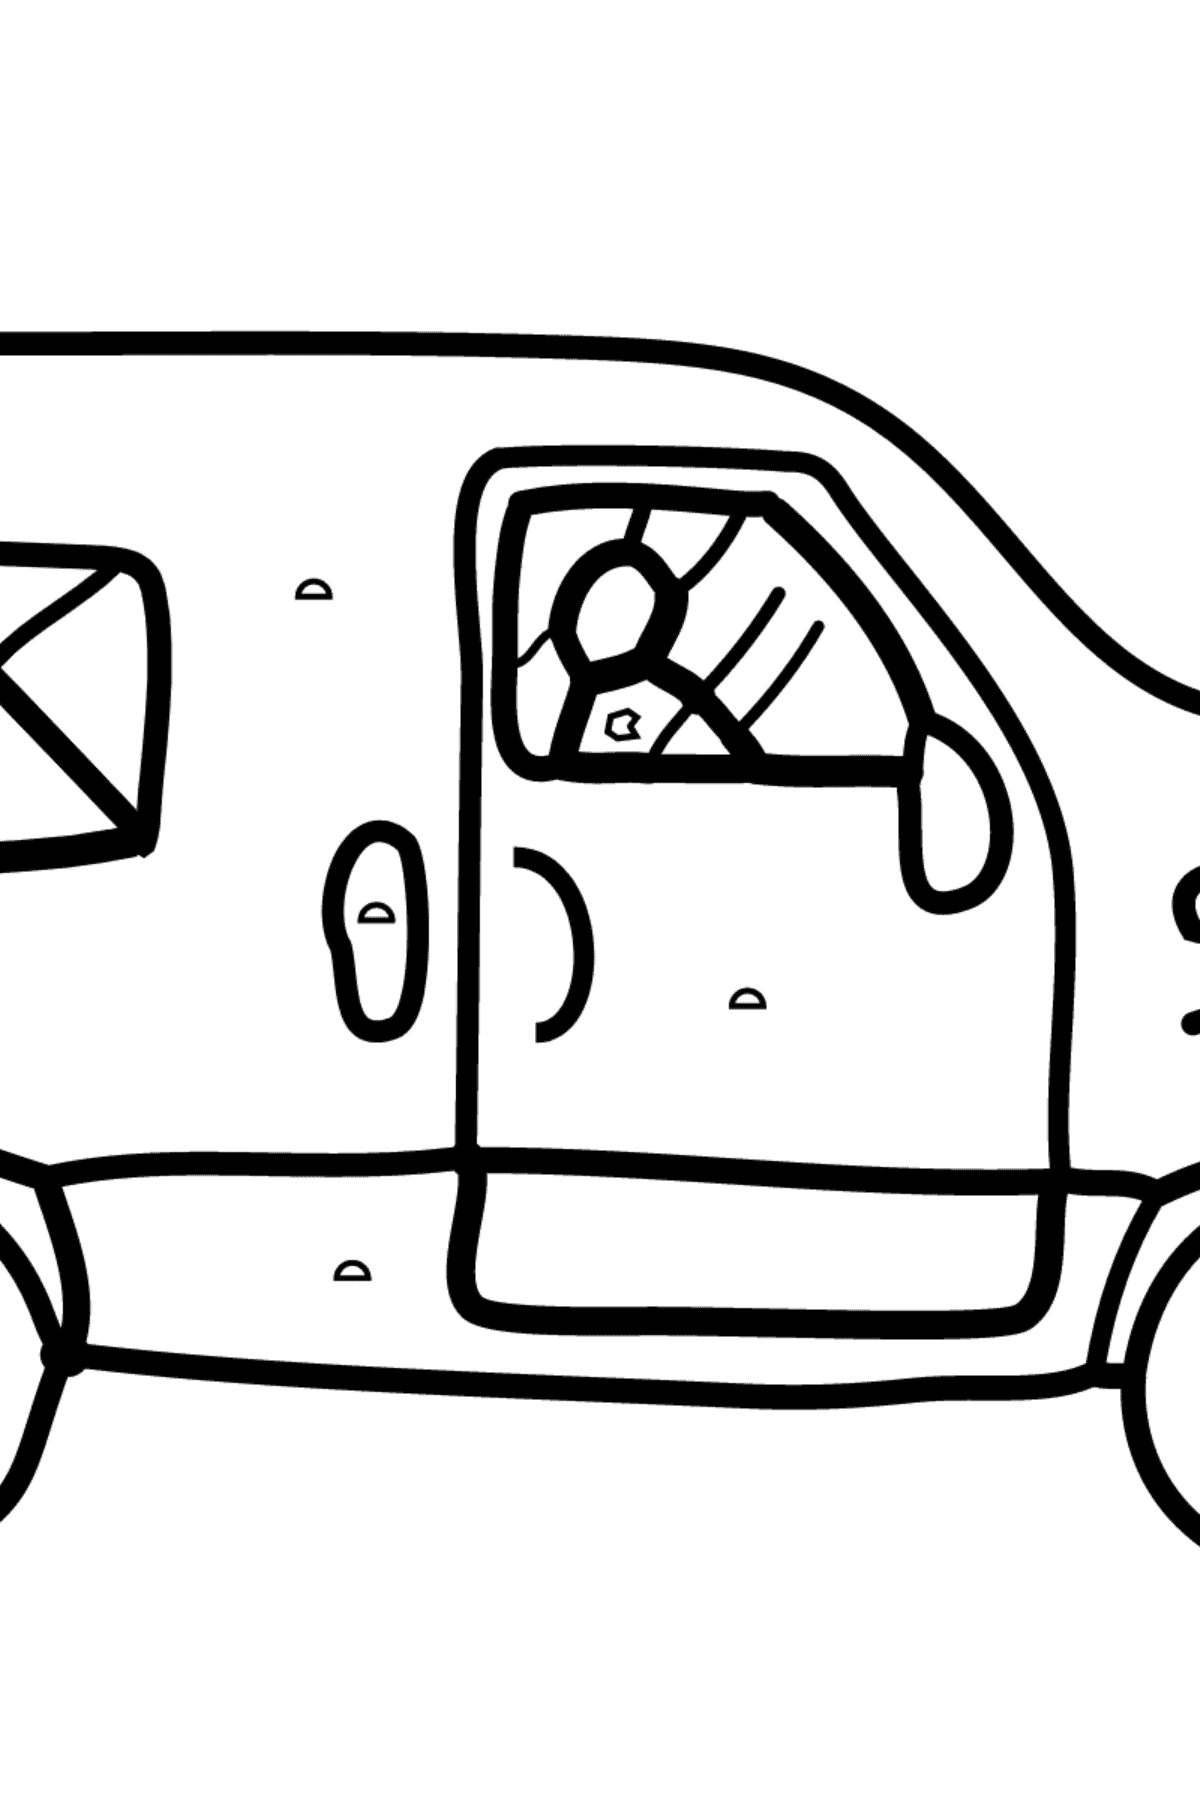 Coloring Page - A Car is Carrying Mail - Coloring by Geometric Shapes for Children